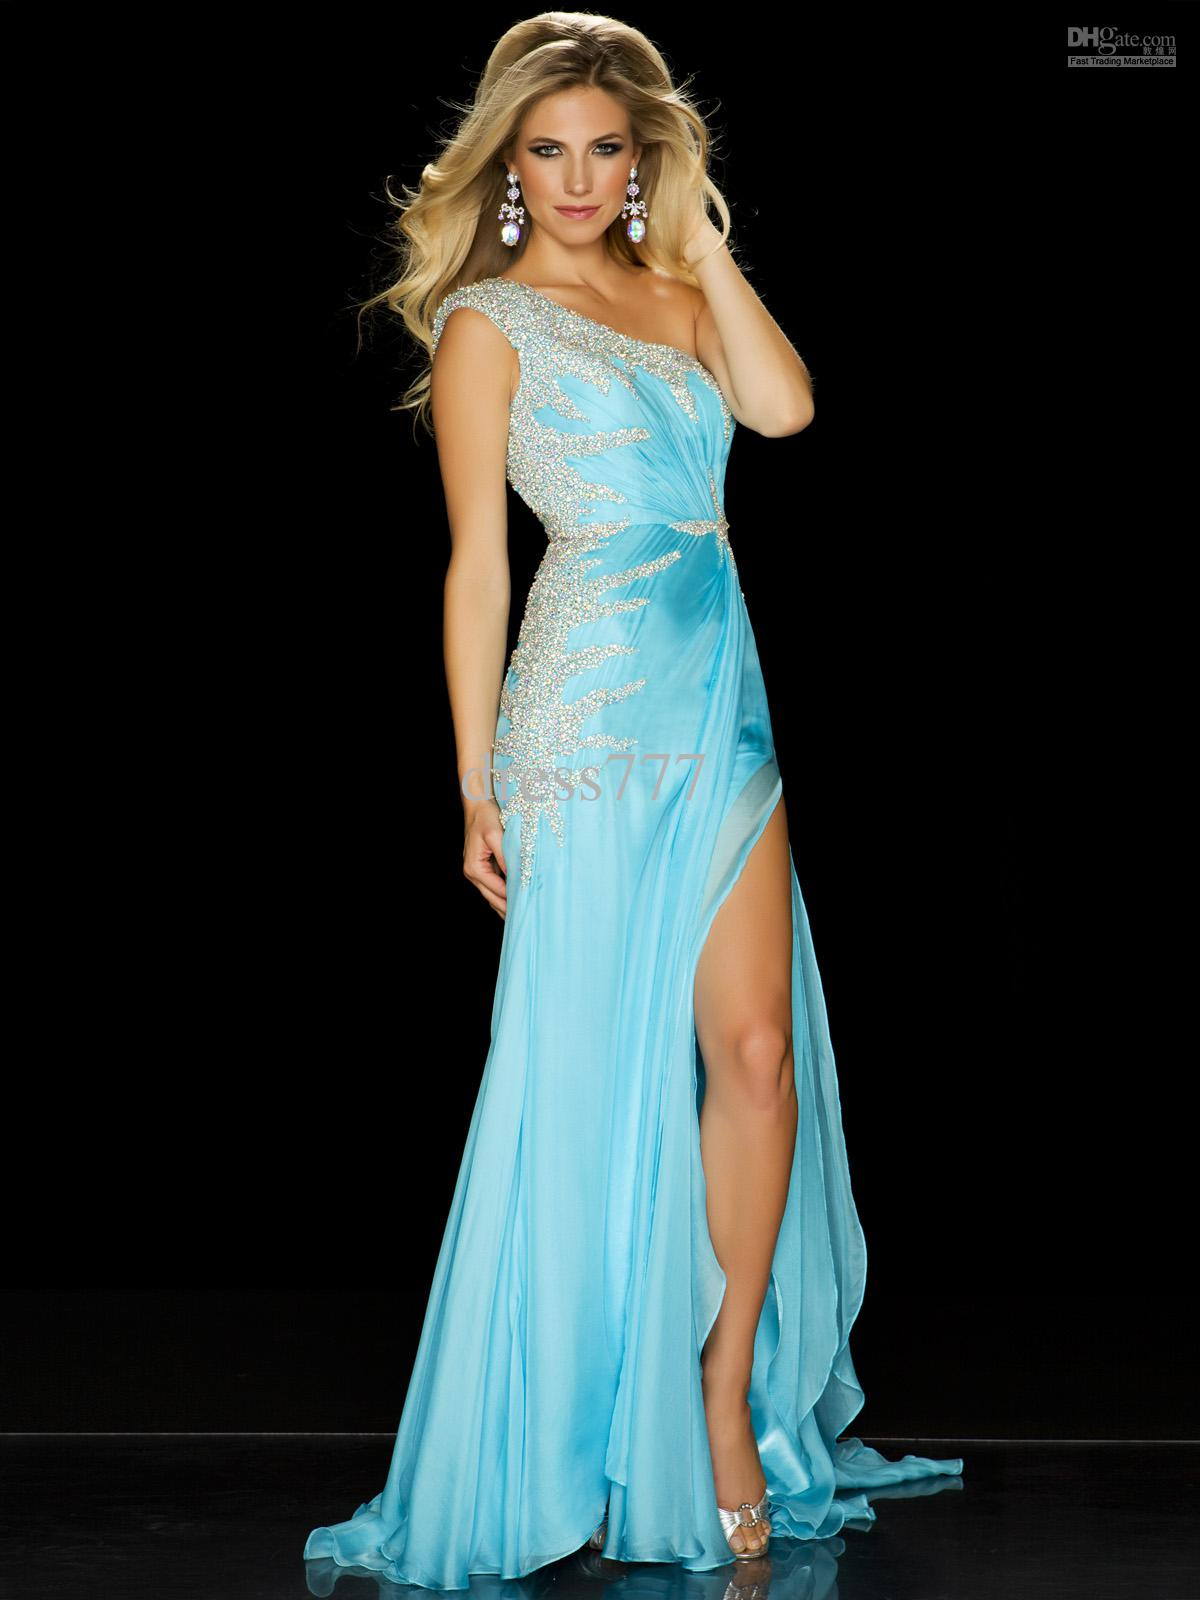 Wholesale - 2013 No Choice Unique Miss Outstanding Teen One Shoulder Embellished Pageant Dress ...